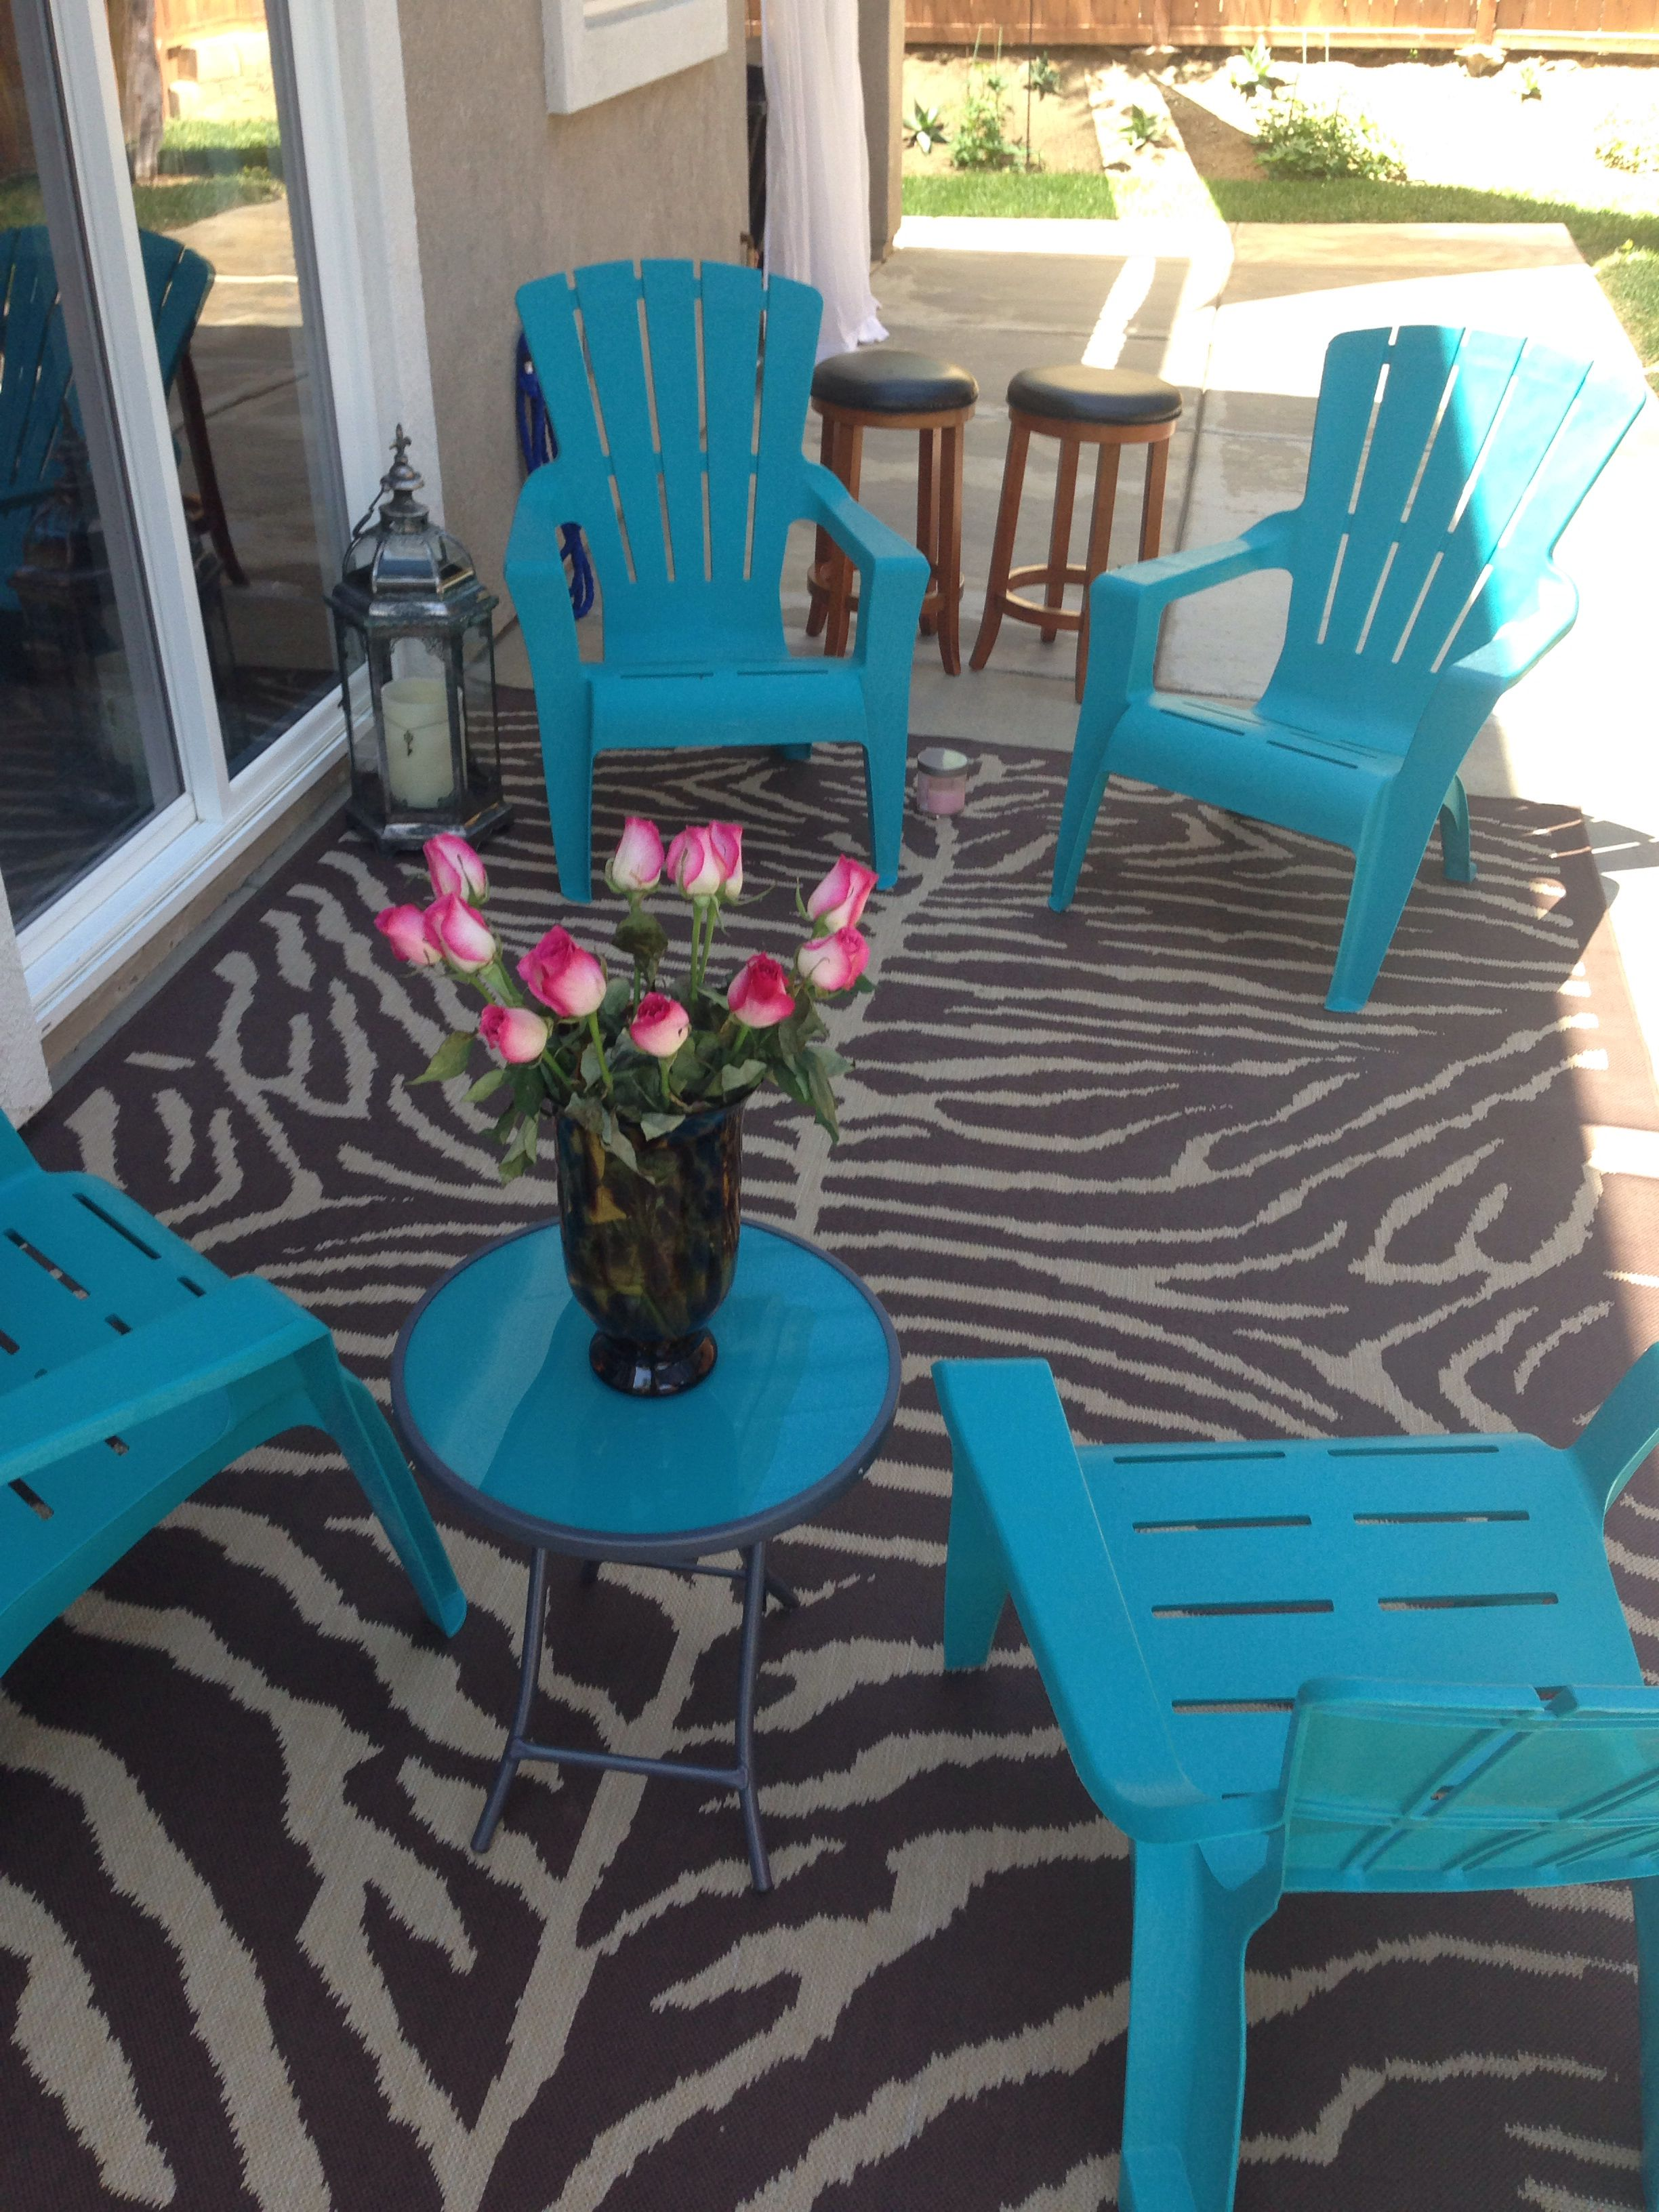 For Backyard Outdoor Rug Off Craigslist And Chairs And Table From Target Moroccan Lantern From Home Goods Candle Outdoor Rugs Best Candles Outdoor Tables